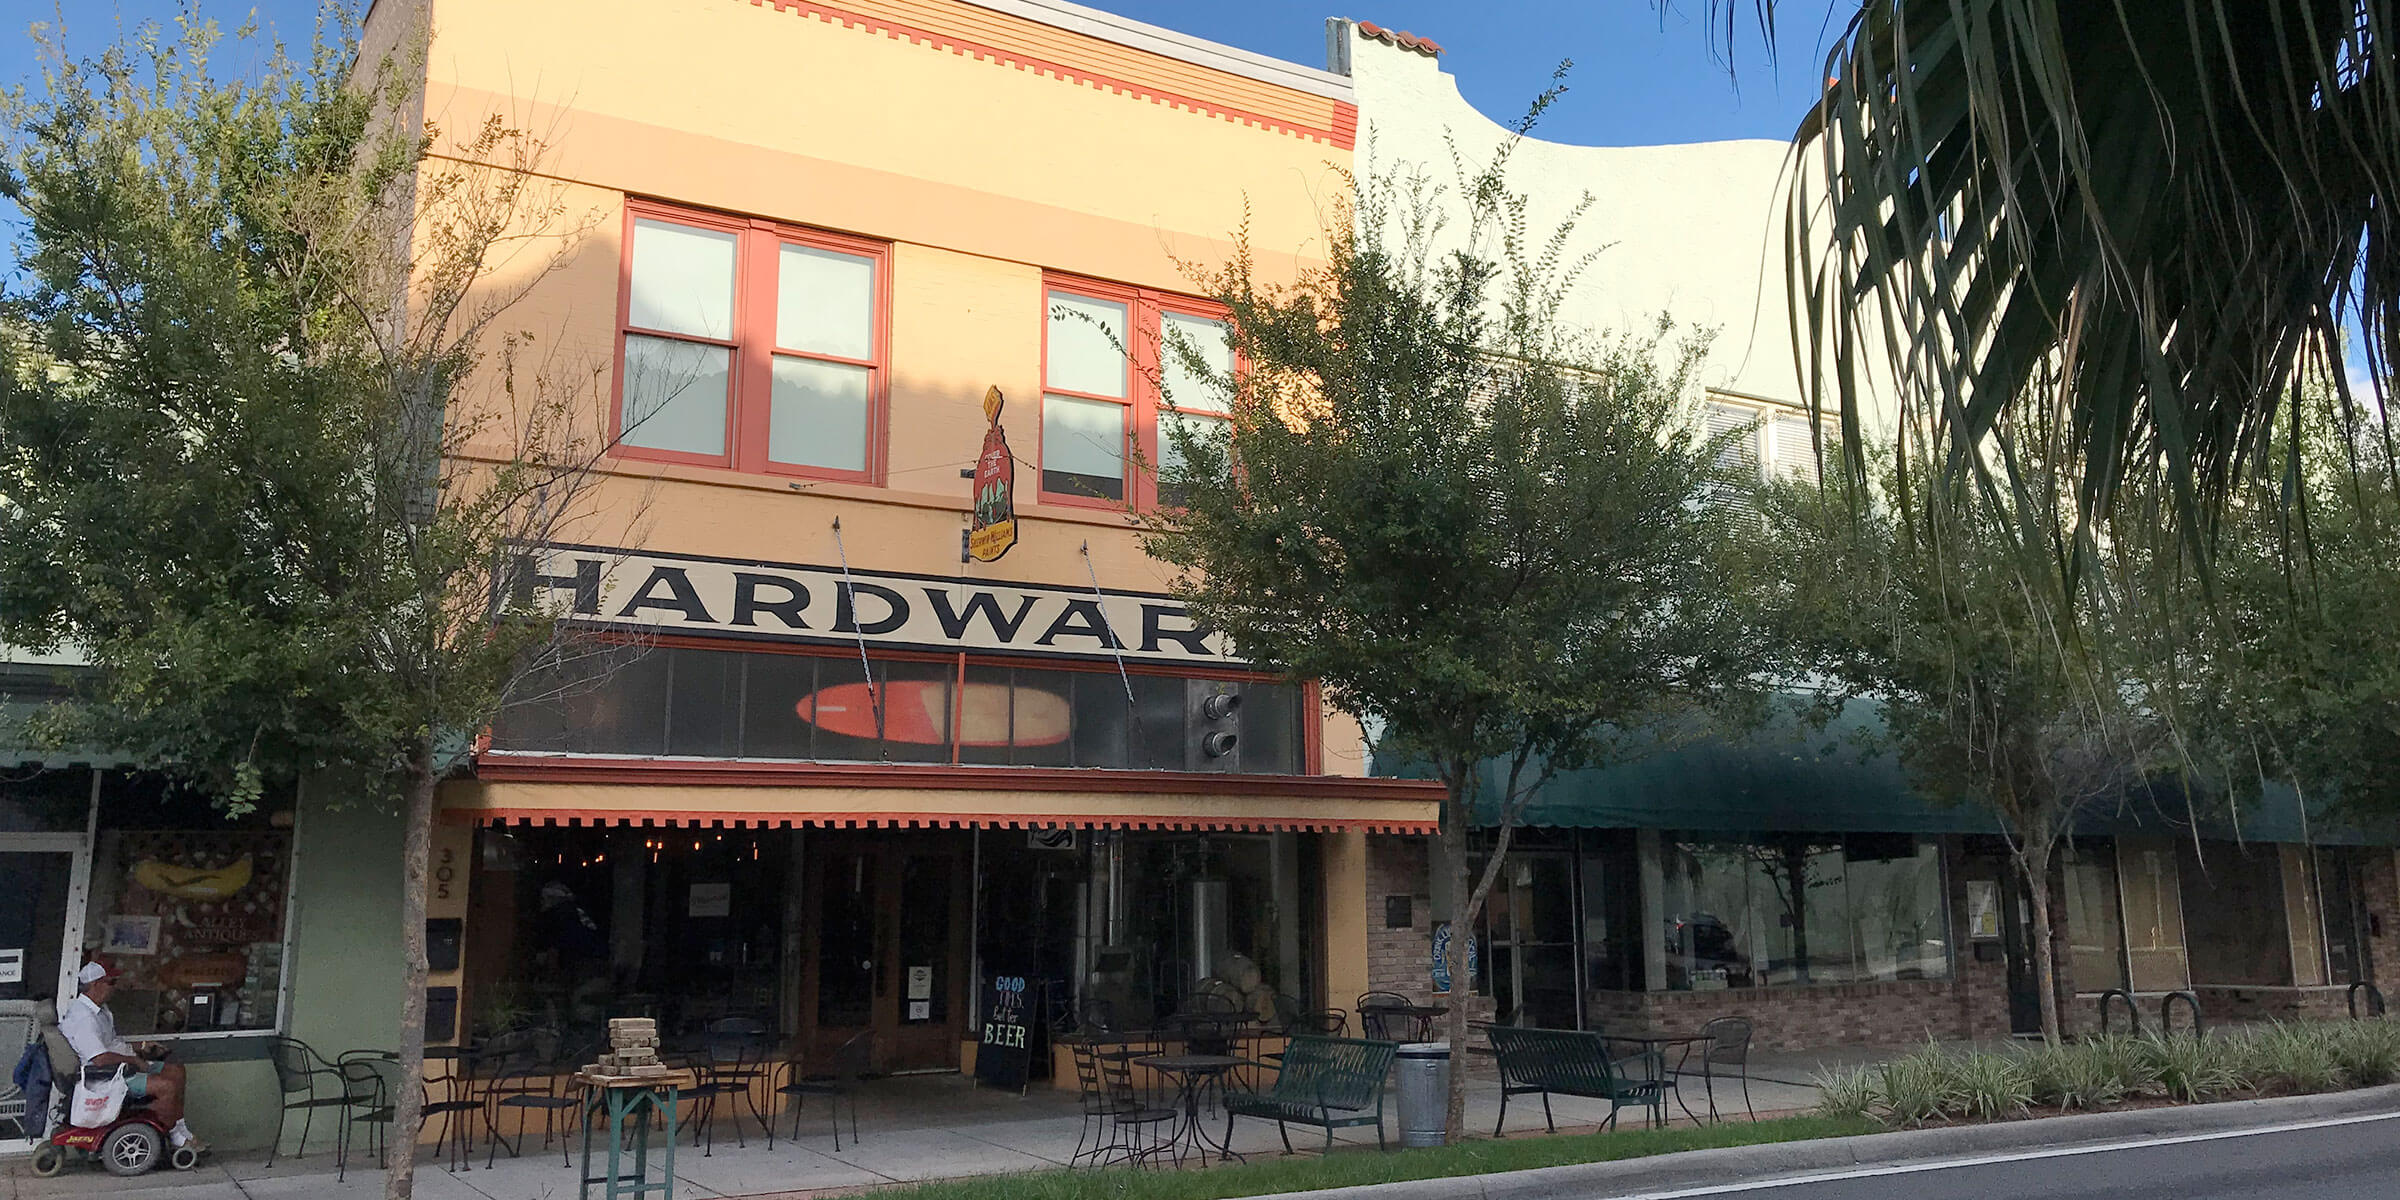 Outside the Playalinda Brewing Company Hardware Store in Titusville, Florida